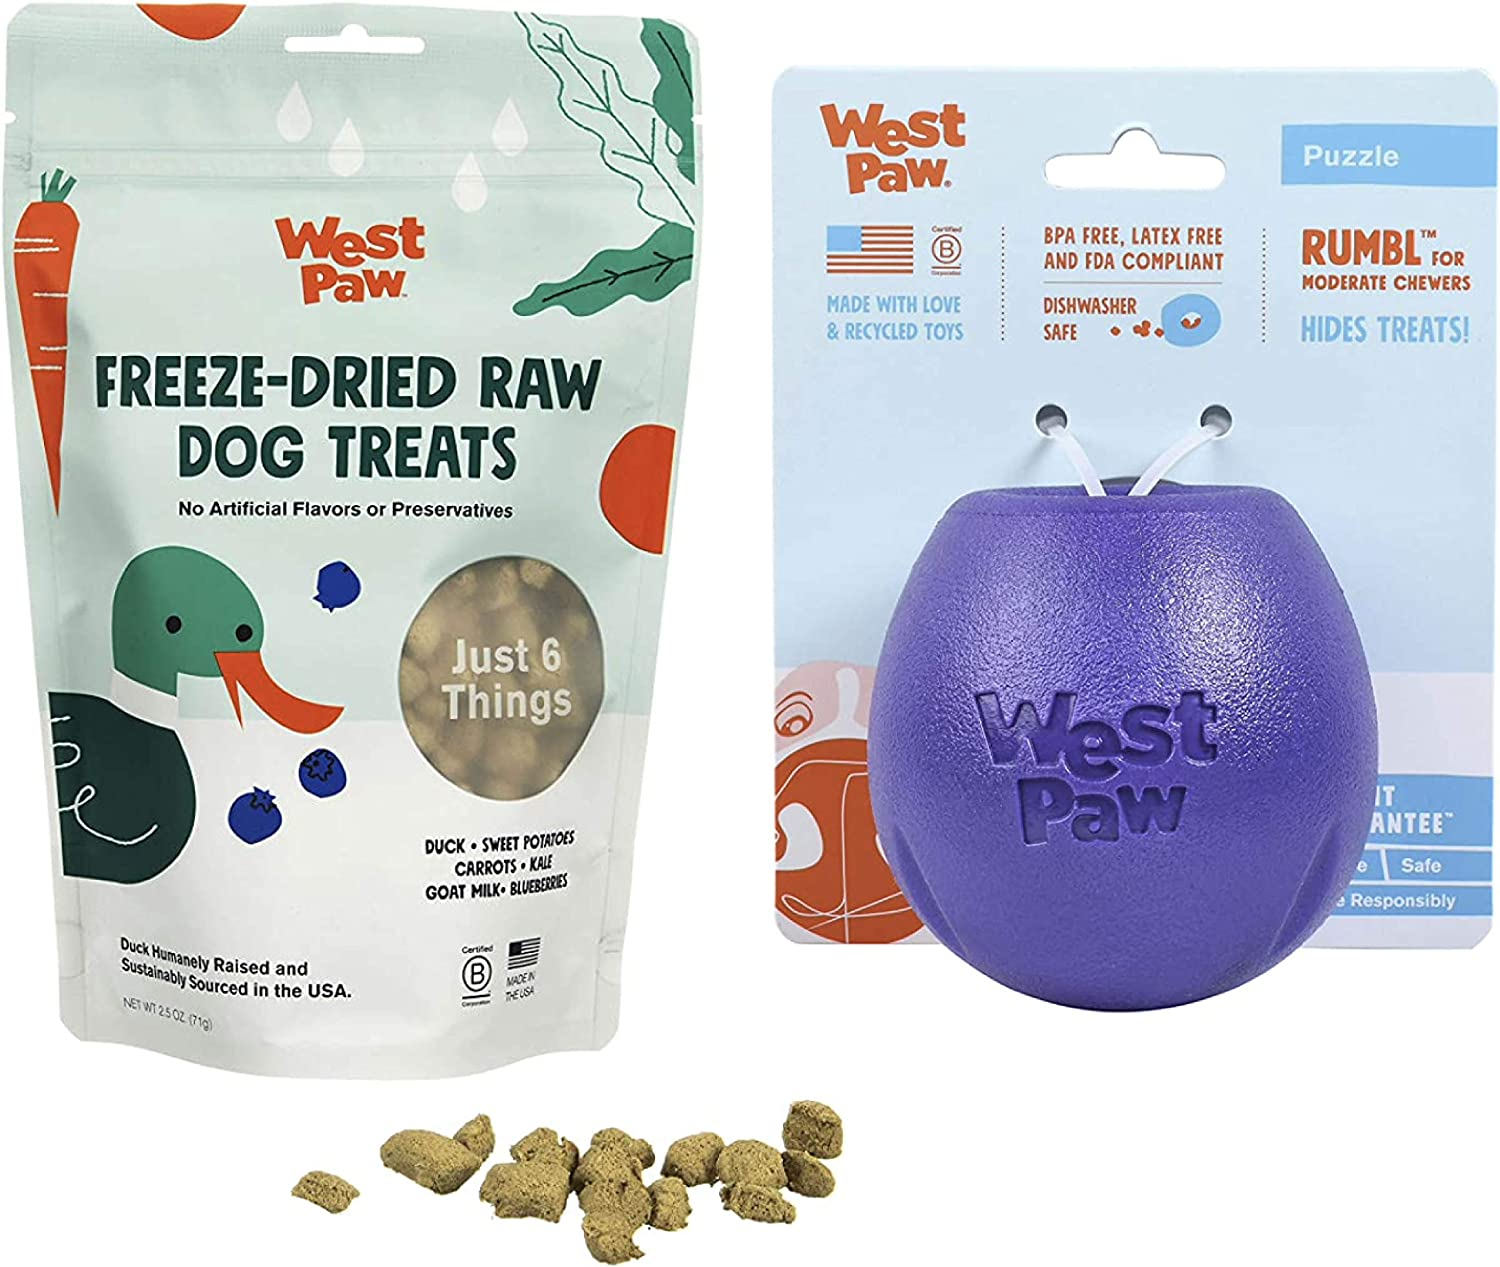 West Paw Duck Superfood Freeze-Dried Raw Dog Treats, 100% Grass Fed & Zogoflex Rumbl Treat-Dispensing Dog Toy for Moderate Chewers, Fetch, Catch – Holds Kibble, Treats (Eggplant, Small)